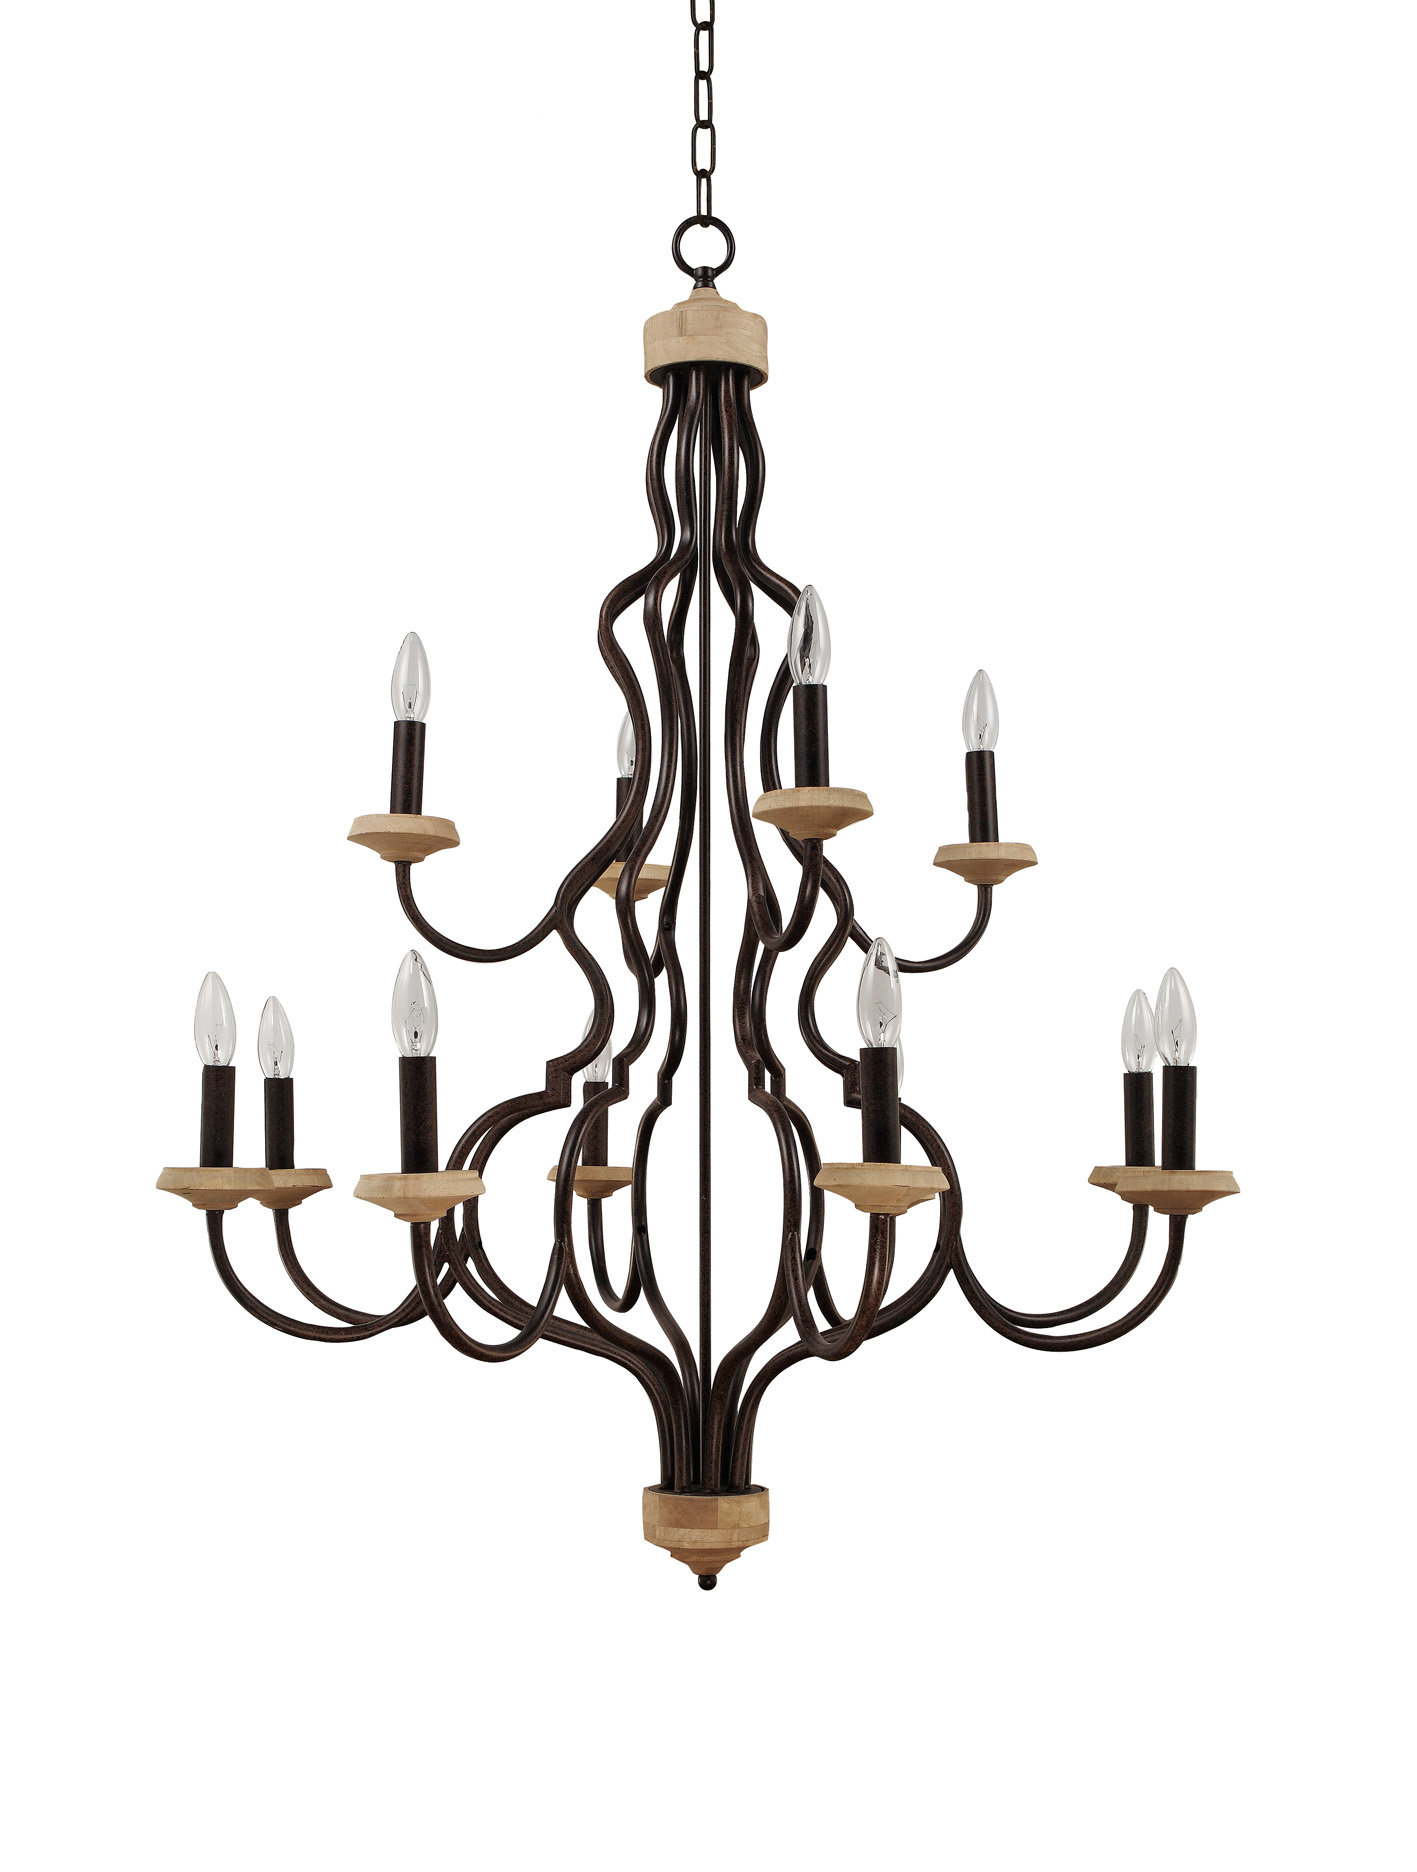 Rustic Traditions Chandelier CL2645 Wholesale Lamps Shades